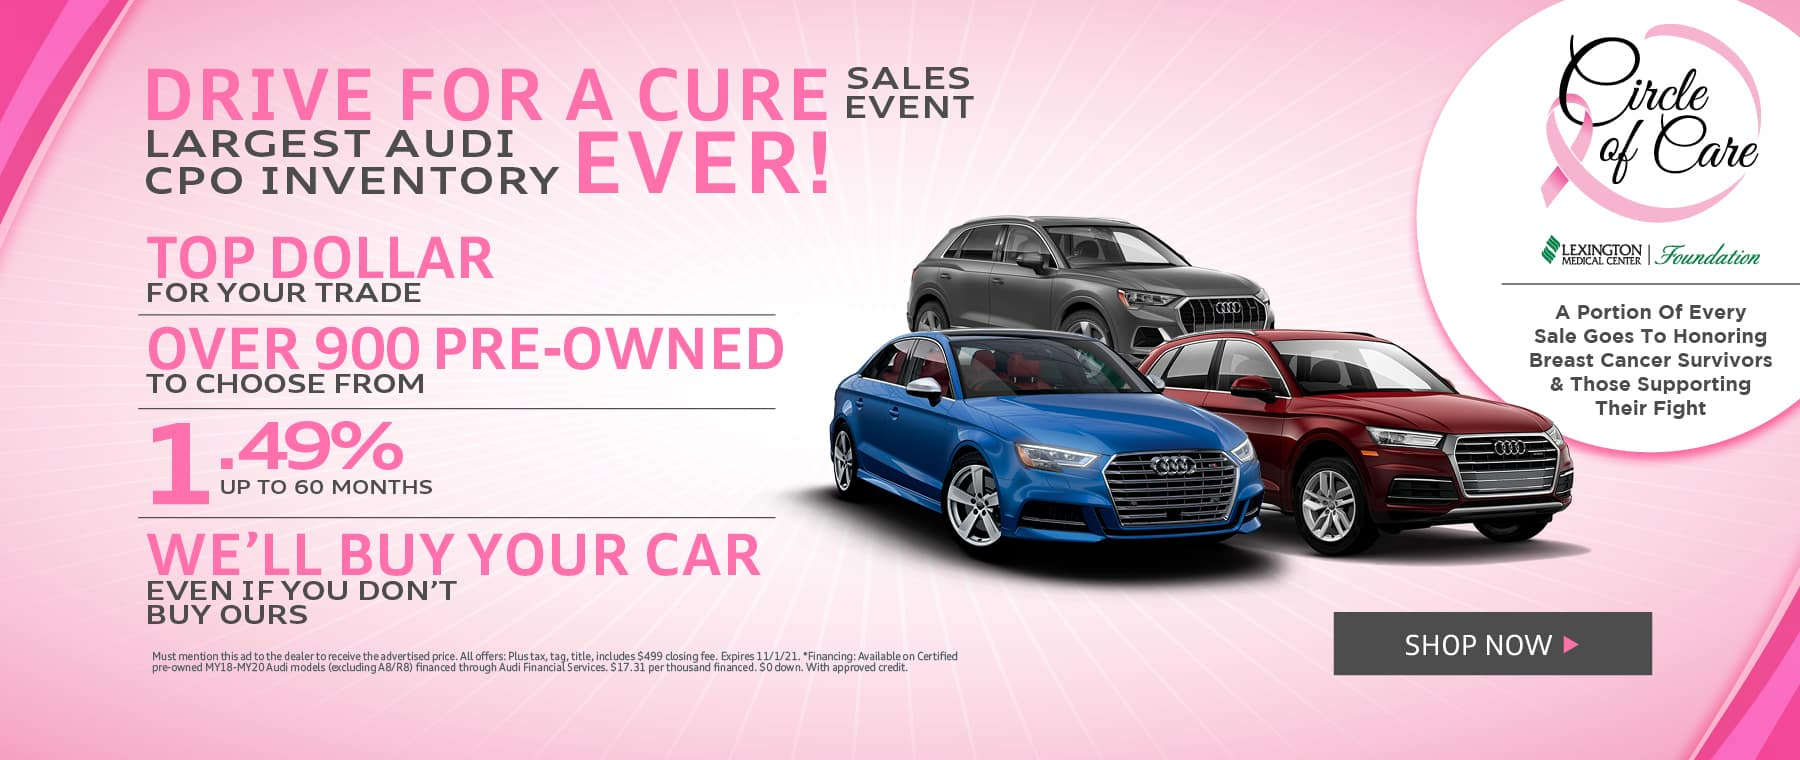 Drive For a Cure - JAC Hero Oct 21